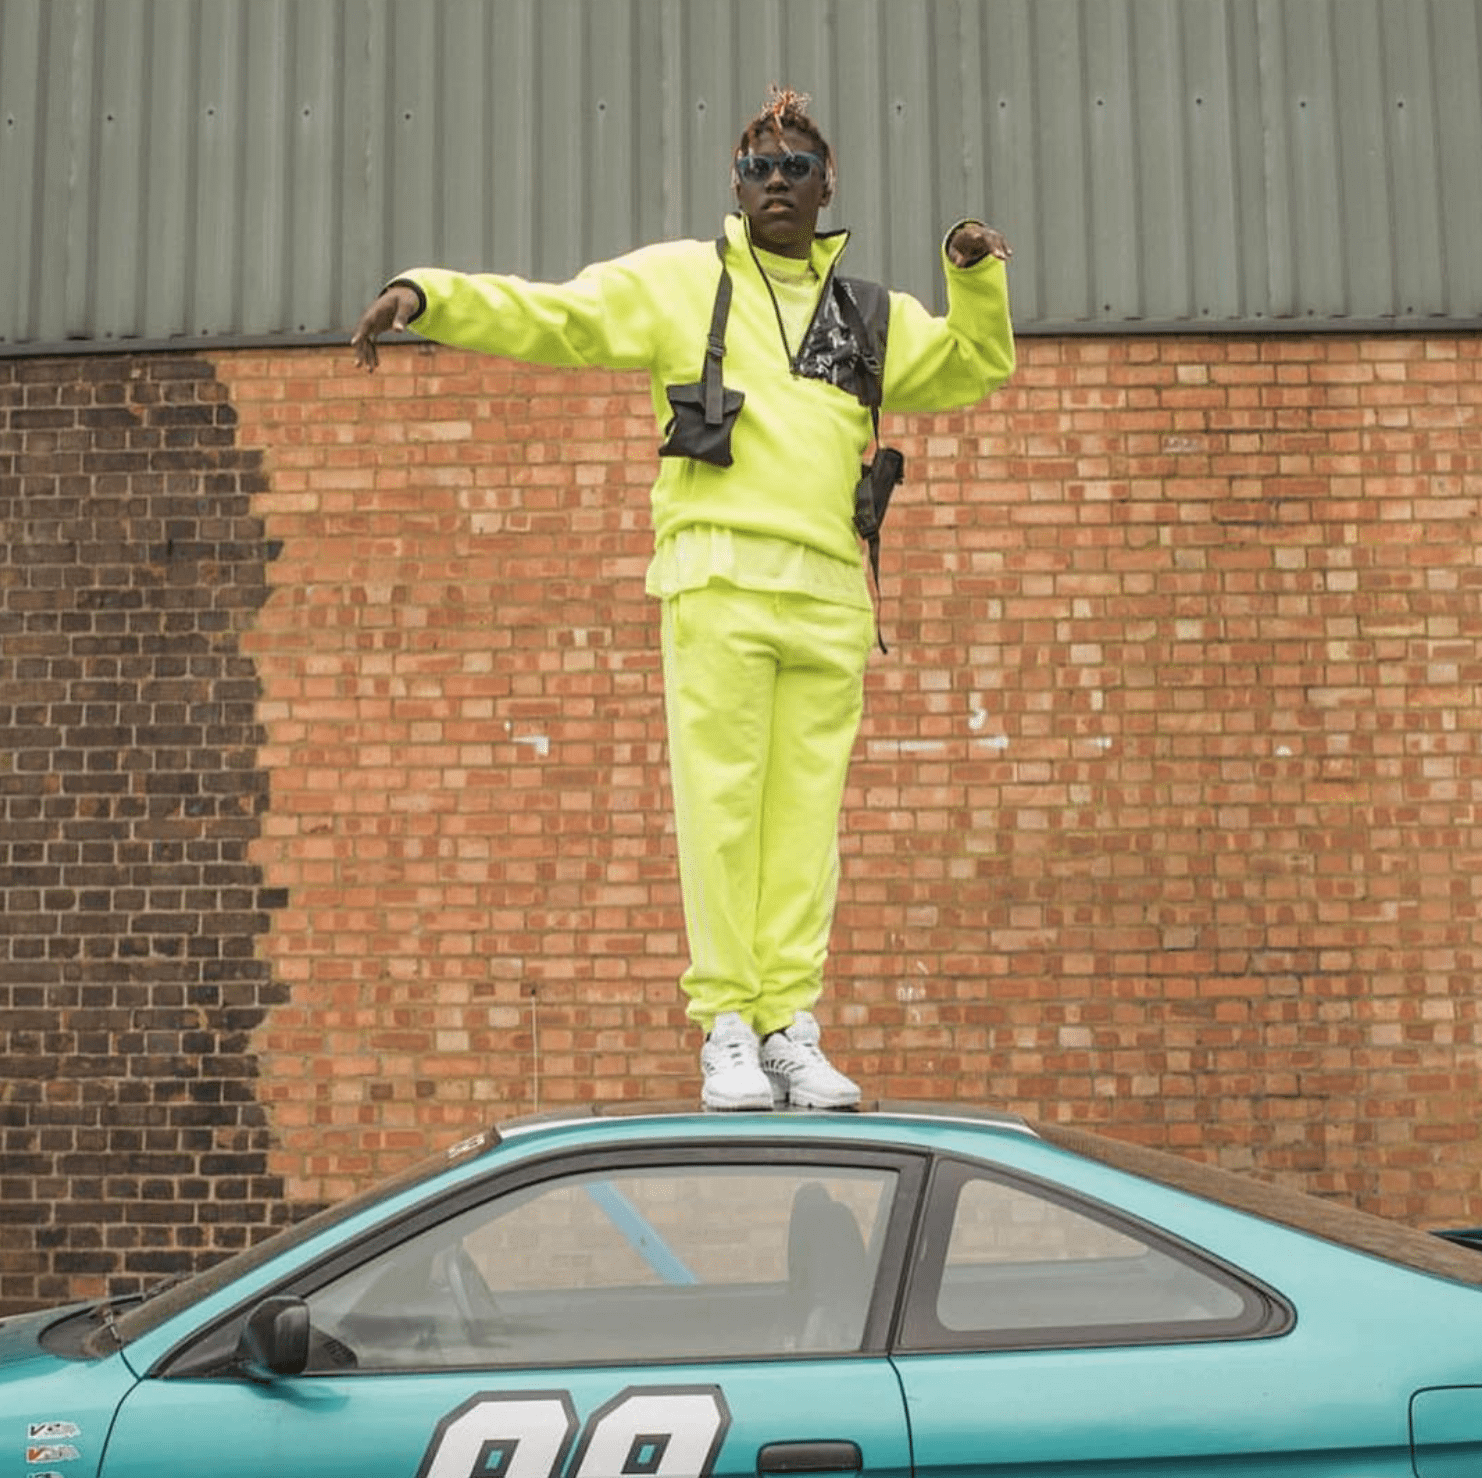 Lil Yachty in the adidas ClimaCOOL 02/17